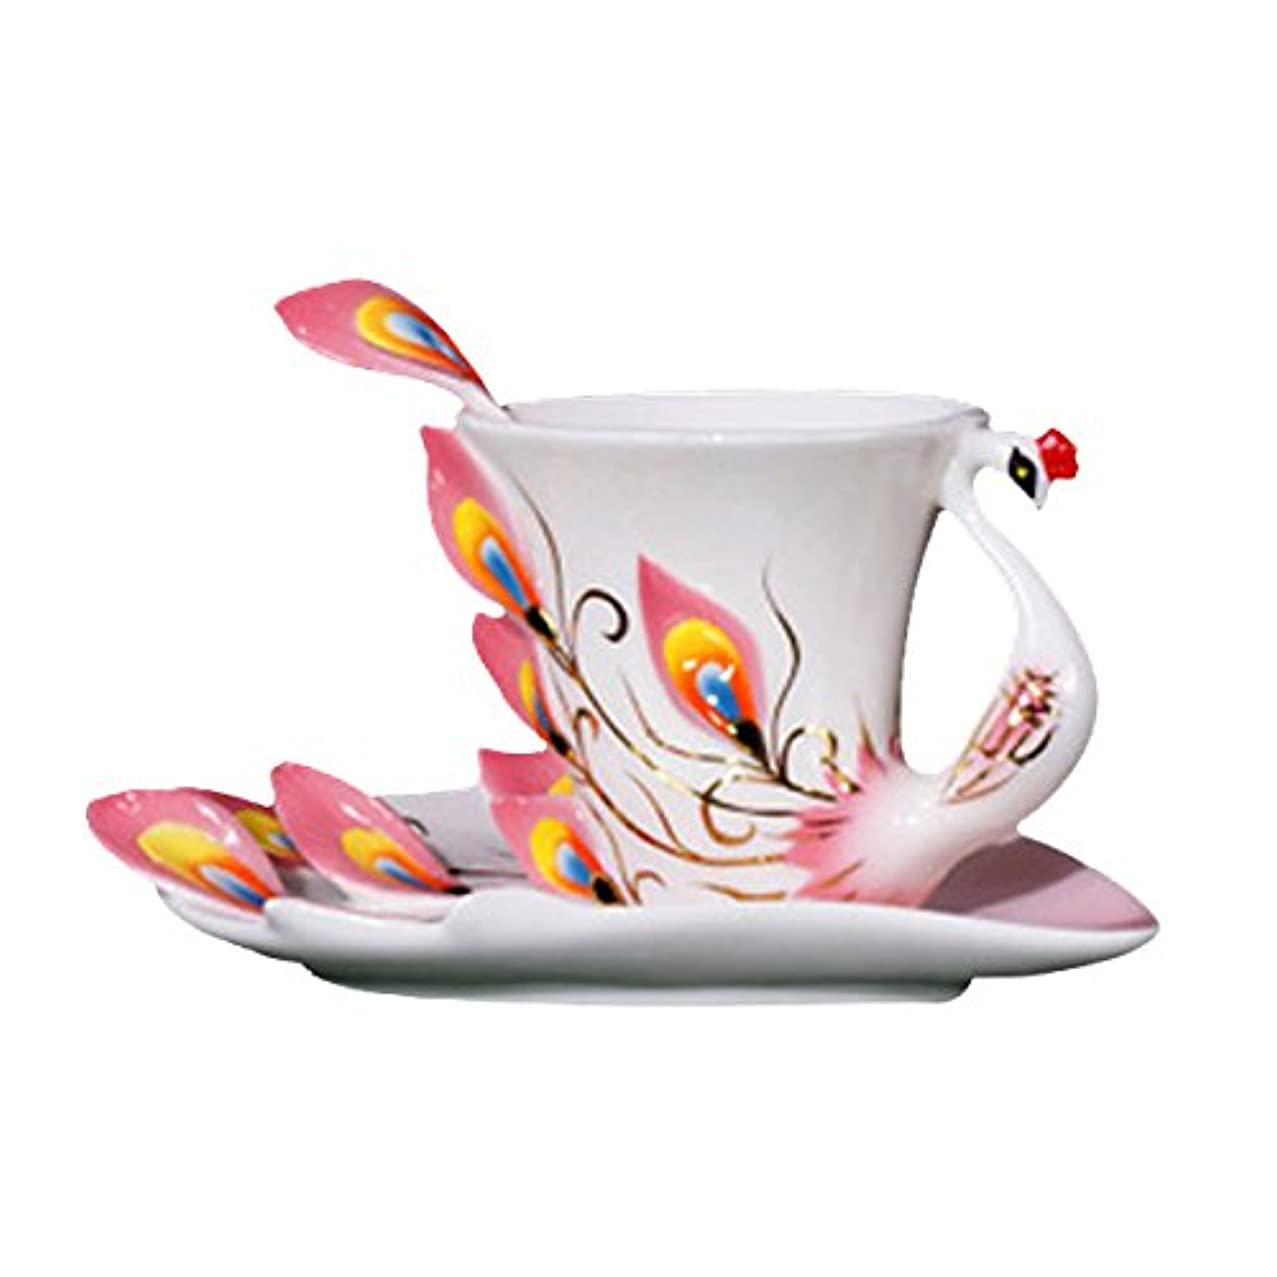 Choholete Porcelain Coffee Cup Set Gorgeous Peacock 1 Cup 1 Saucer 1 Spoon Pink